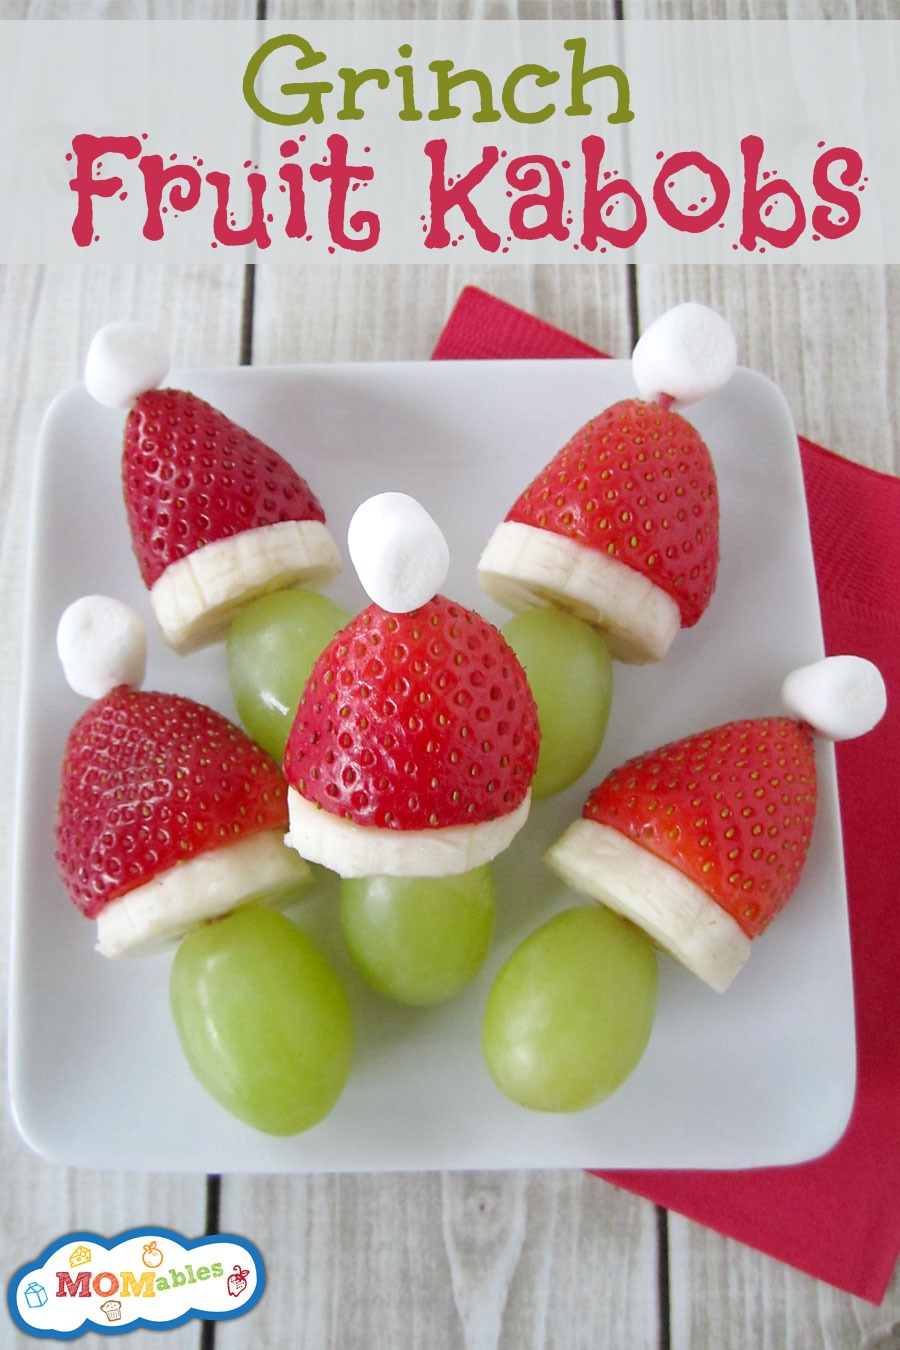 Healthy Christmas Appetizers Pinterest 7 Fun Healthy Food Ideas For The School Party